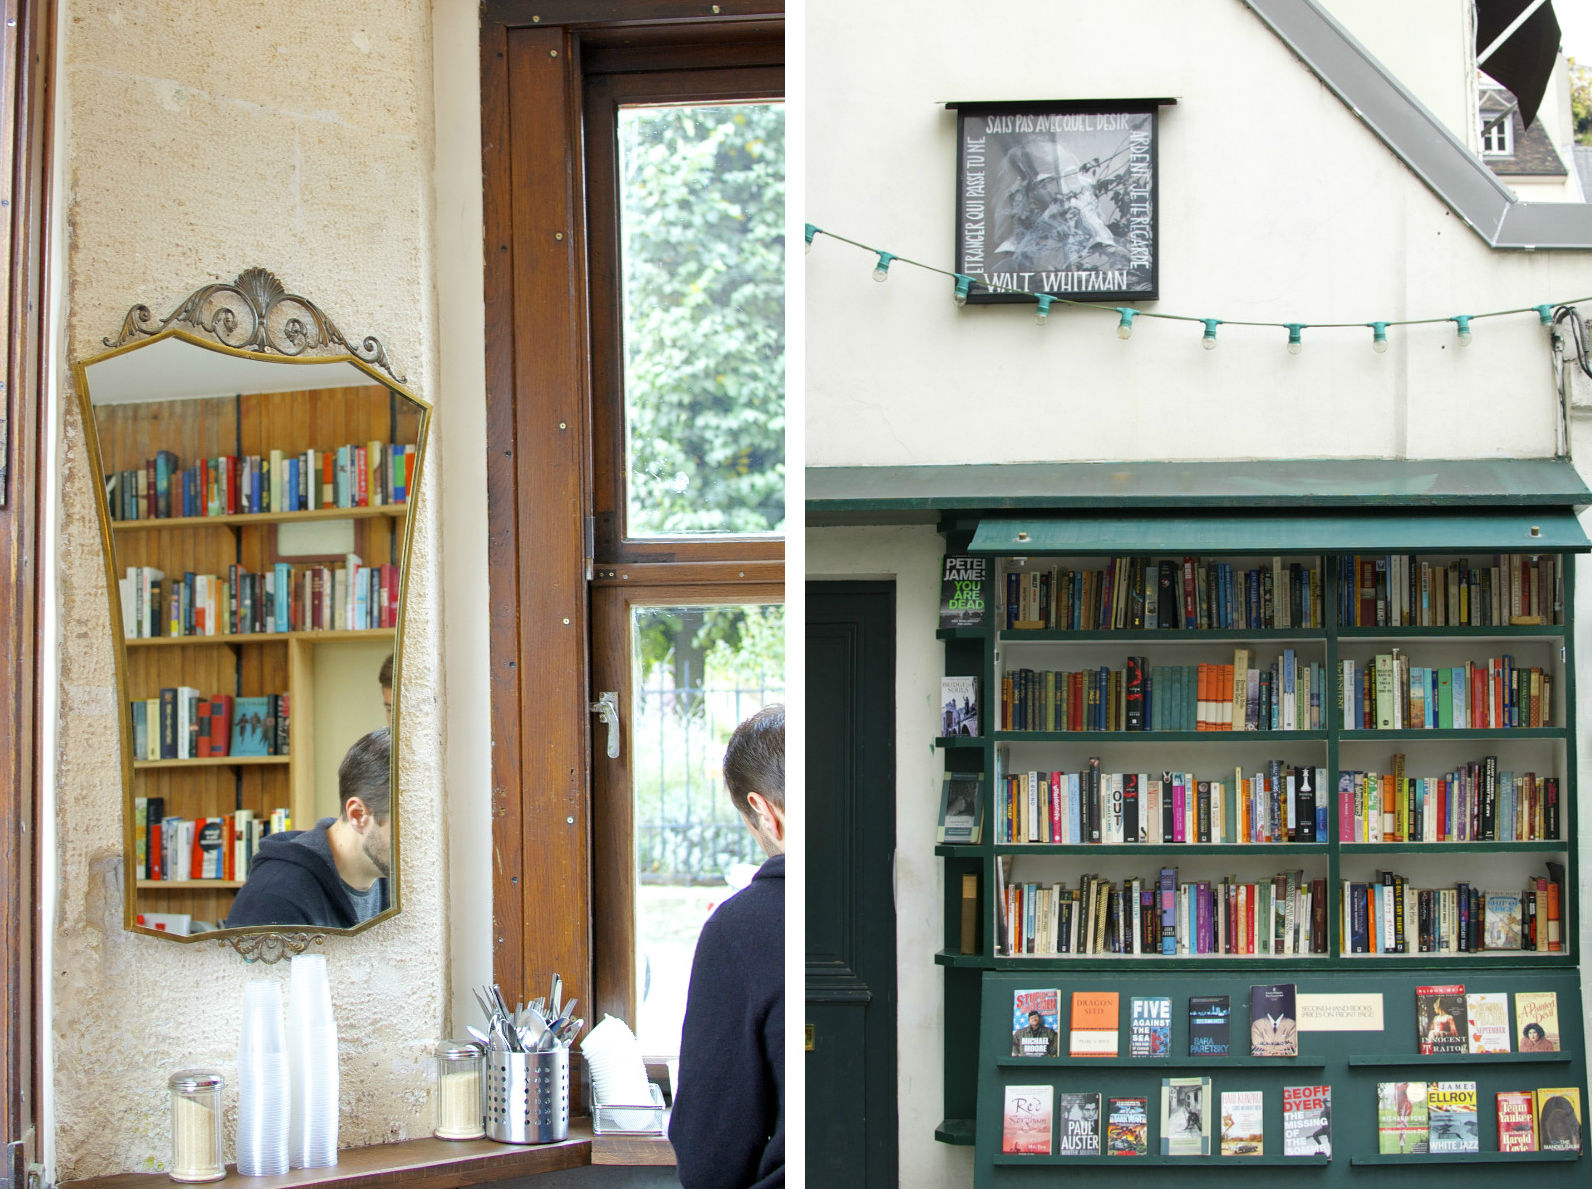 HiP Paris Blog, Shakespeare & Company Café. The café, like the store, is a haven for book lovers- now served with coffee.